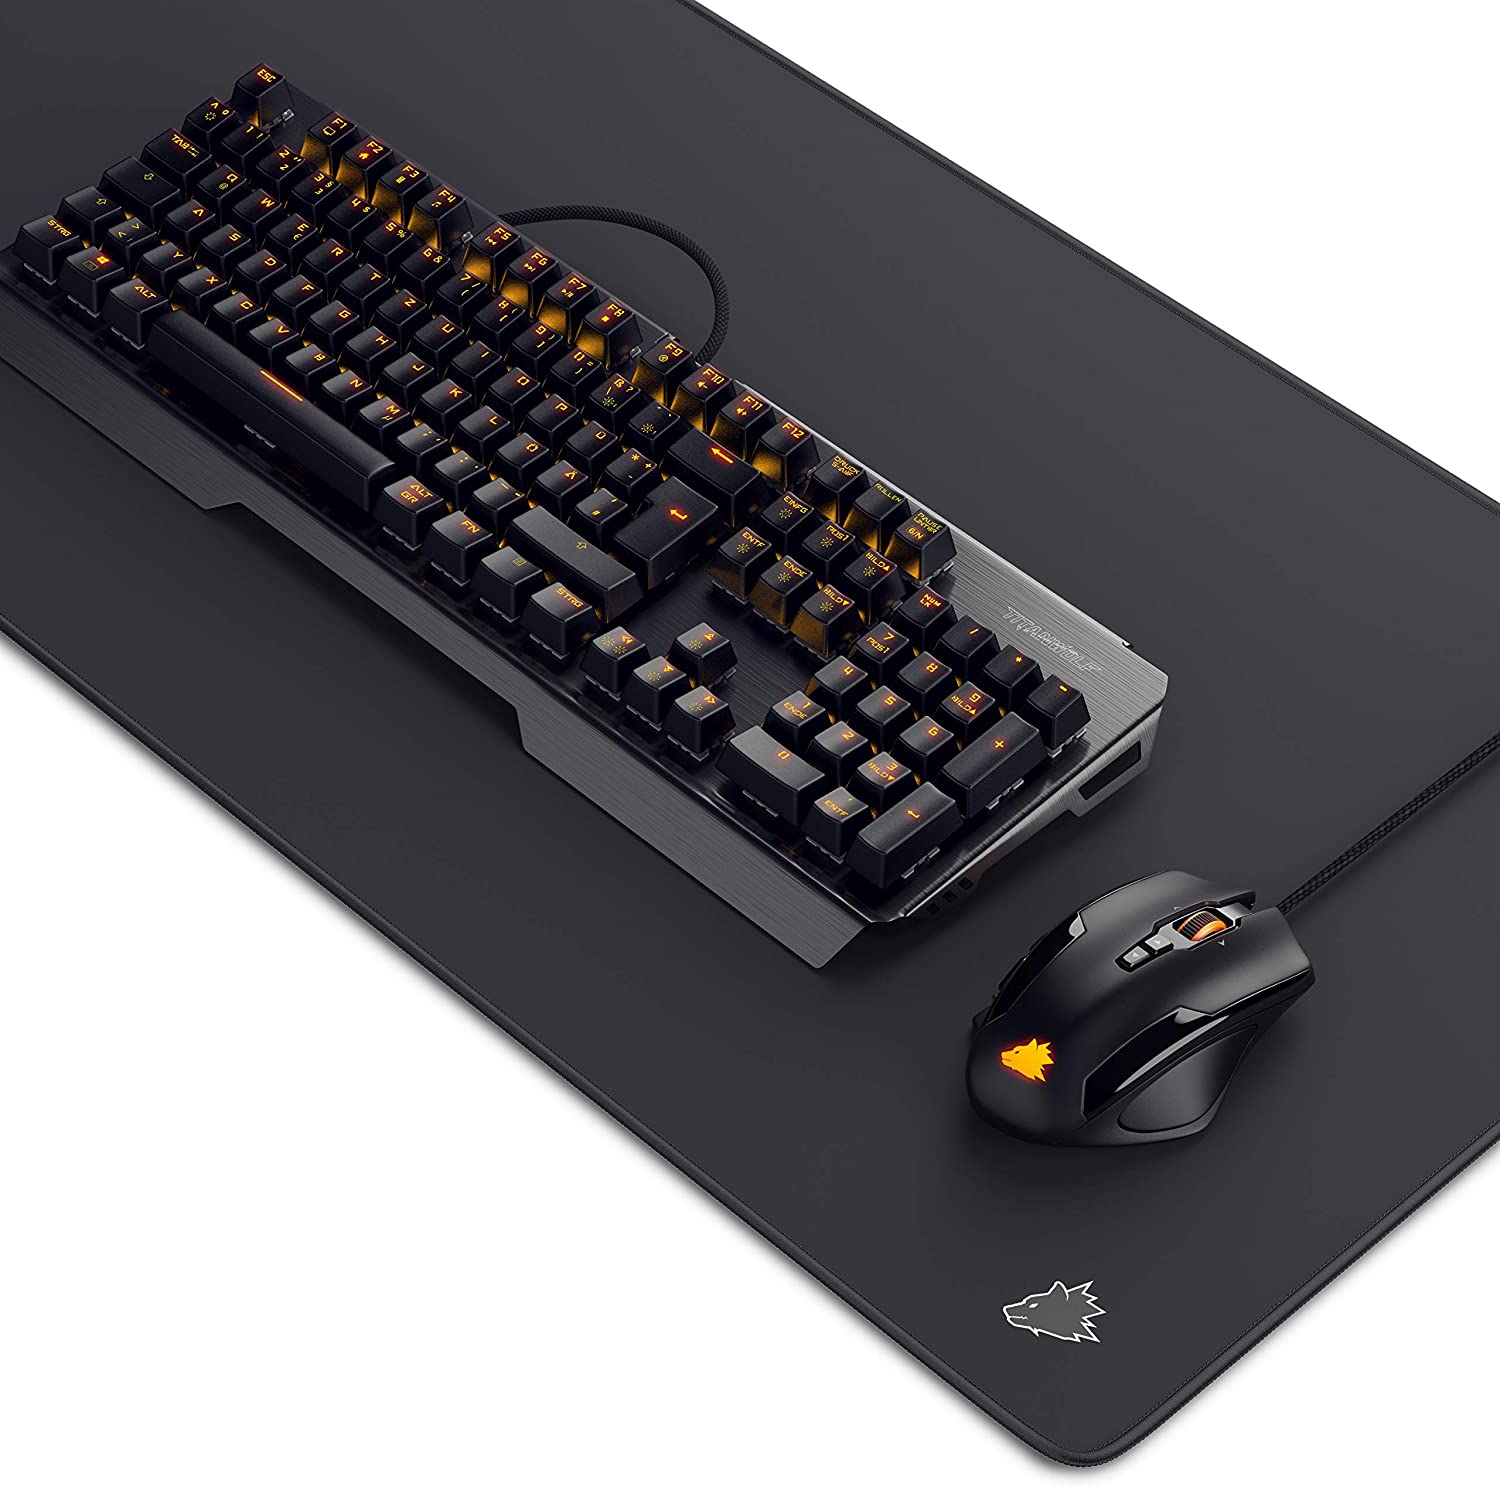 TITANWOLF Gaming Set - Teclado mecánico ALUMAR MMO 10800dpi Gaming Mouse Specialist XXL Mouse Pad símbolo - Teclado mecánico - Anti-ghosting - LED ...